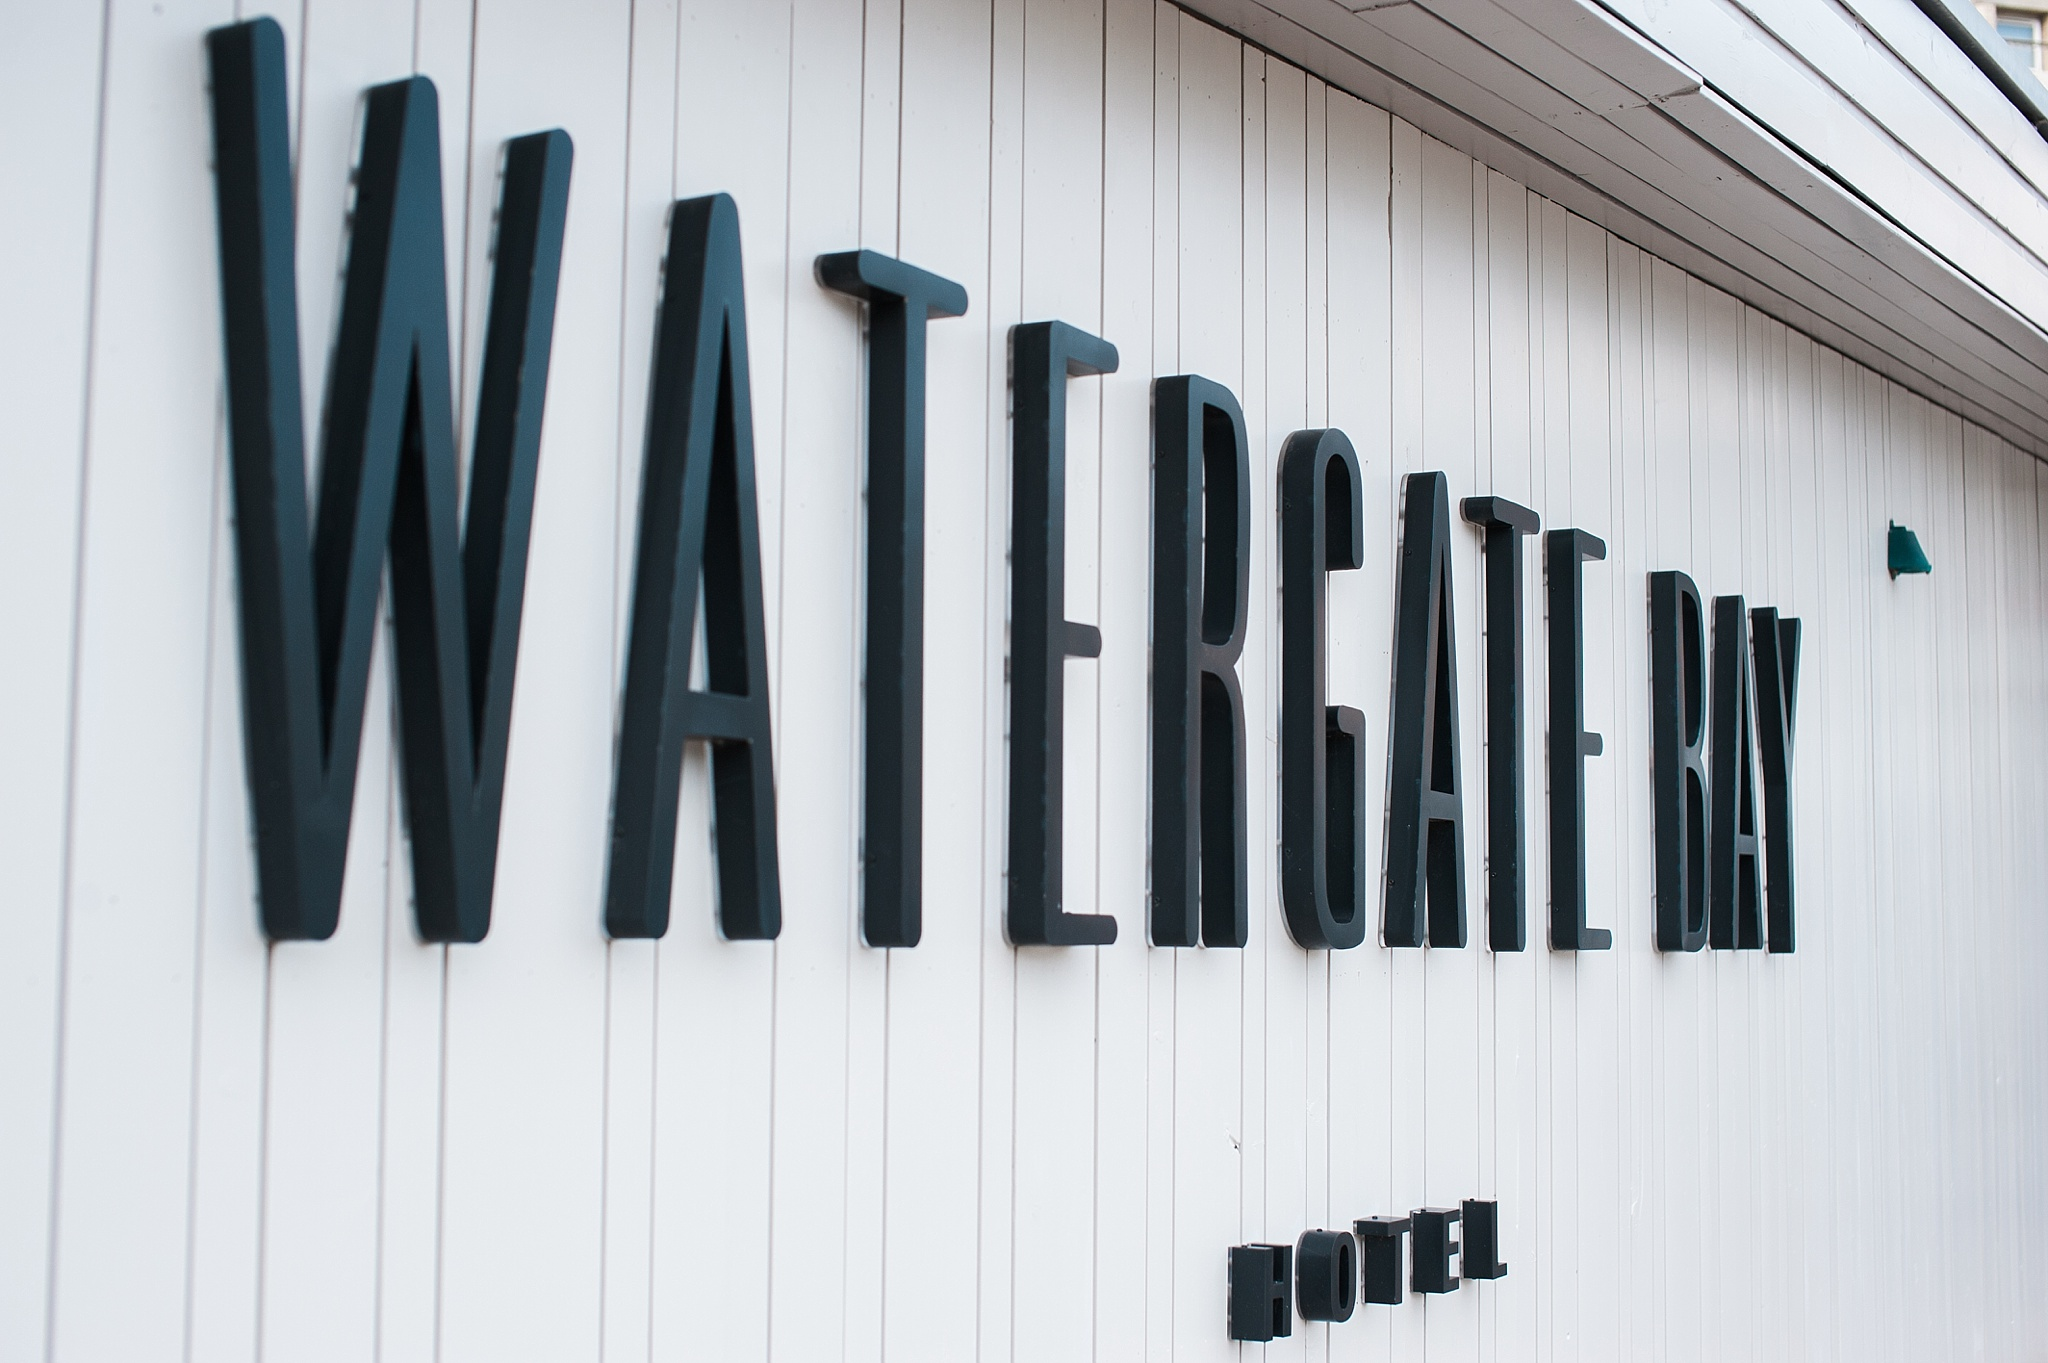 sign for the watergate bay hotel in Newquay, Cornwall